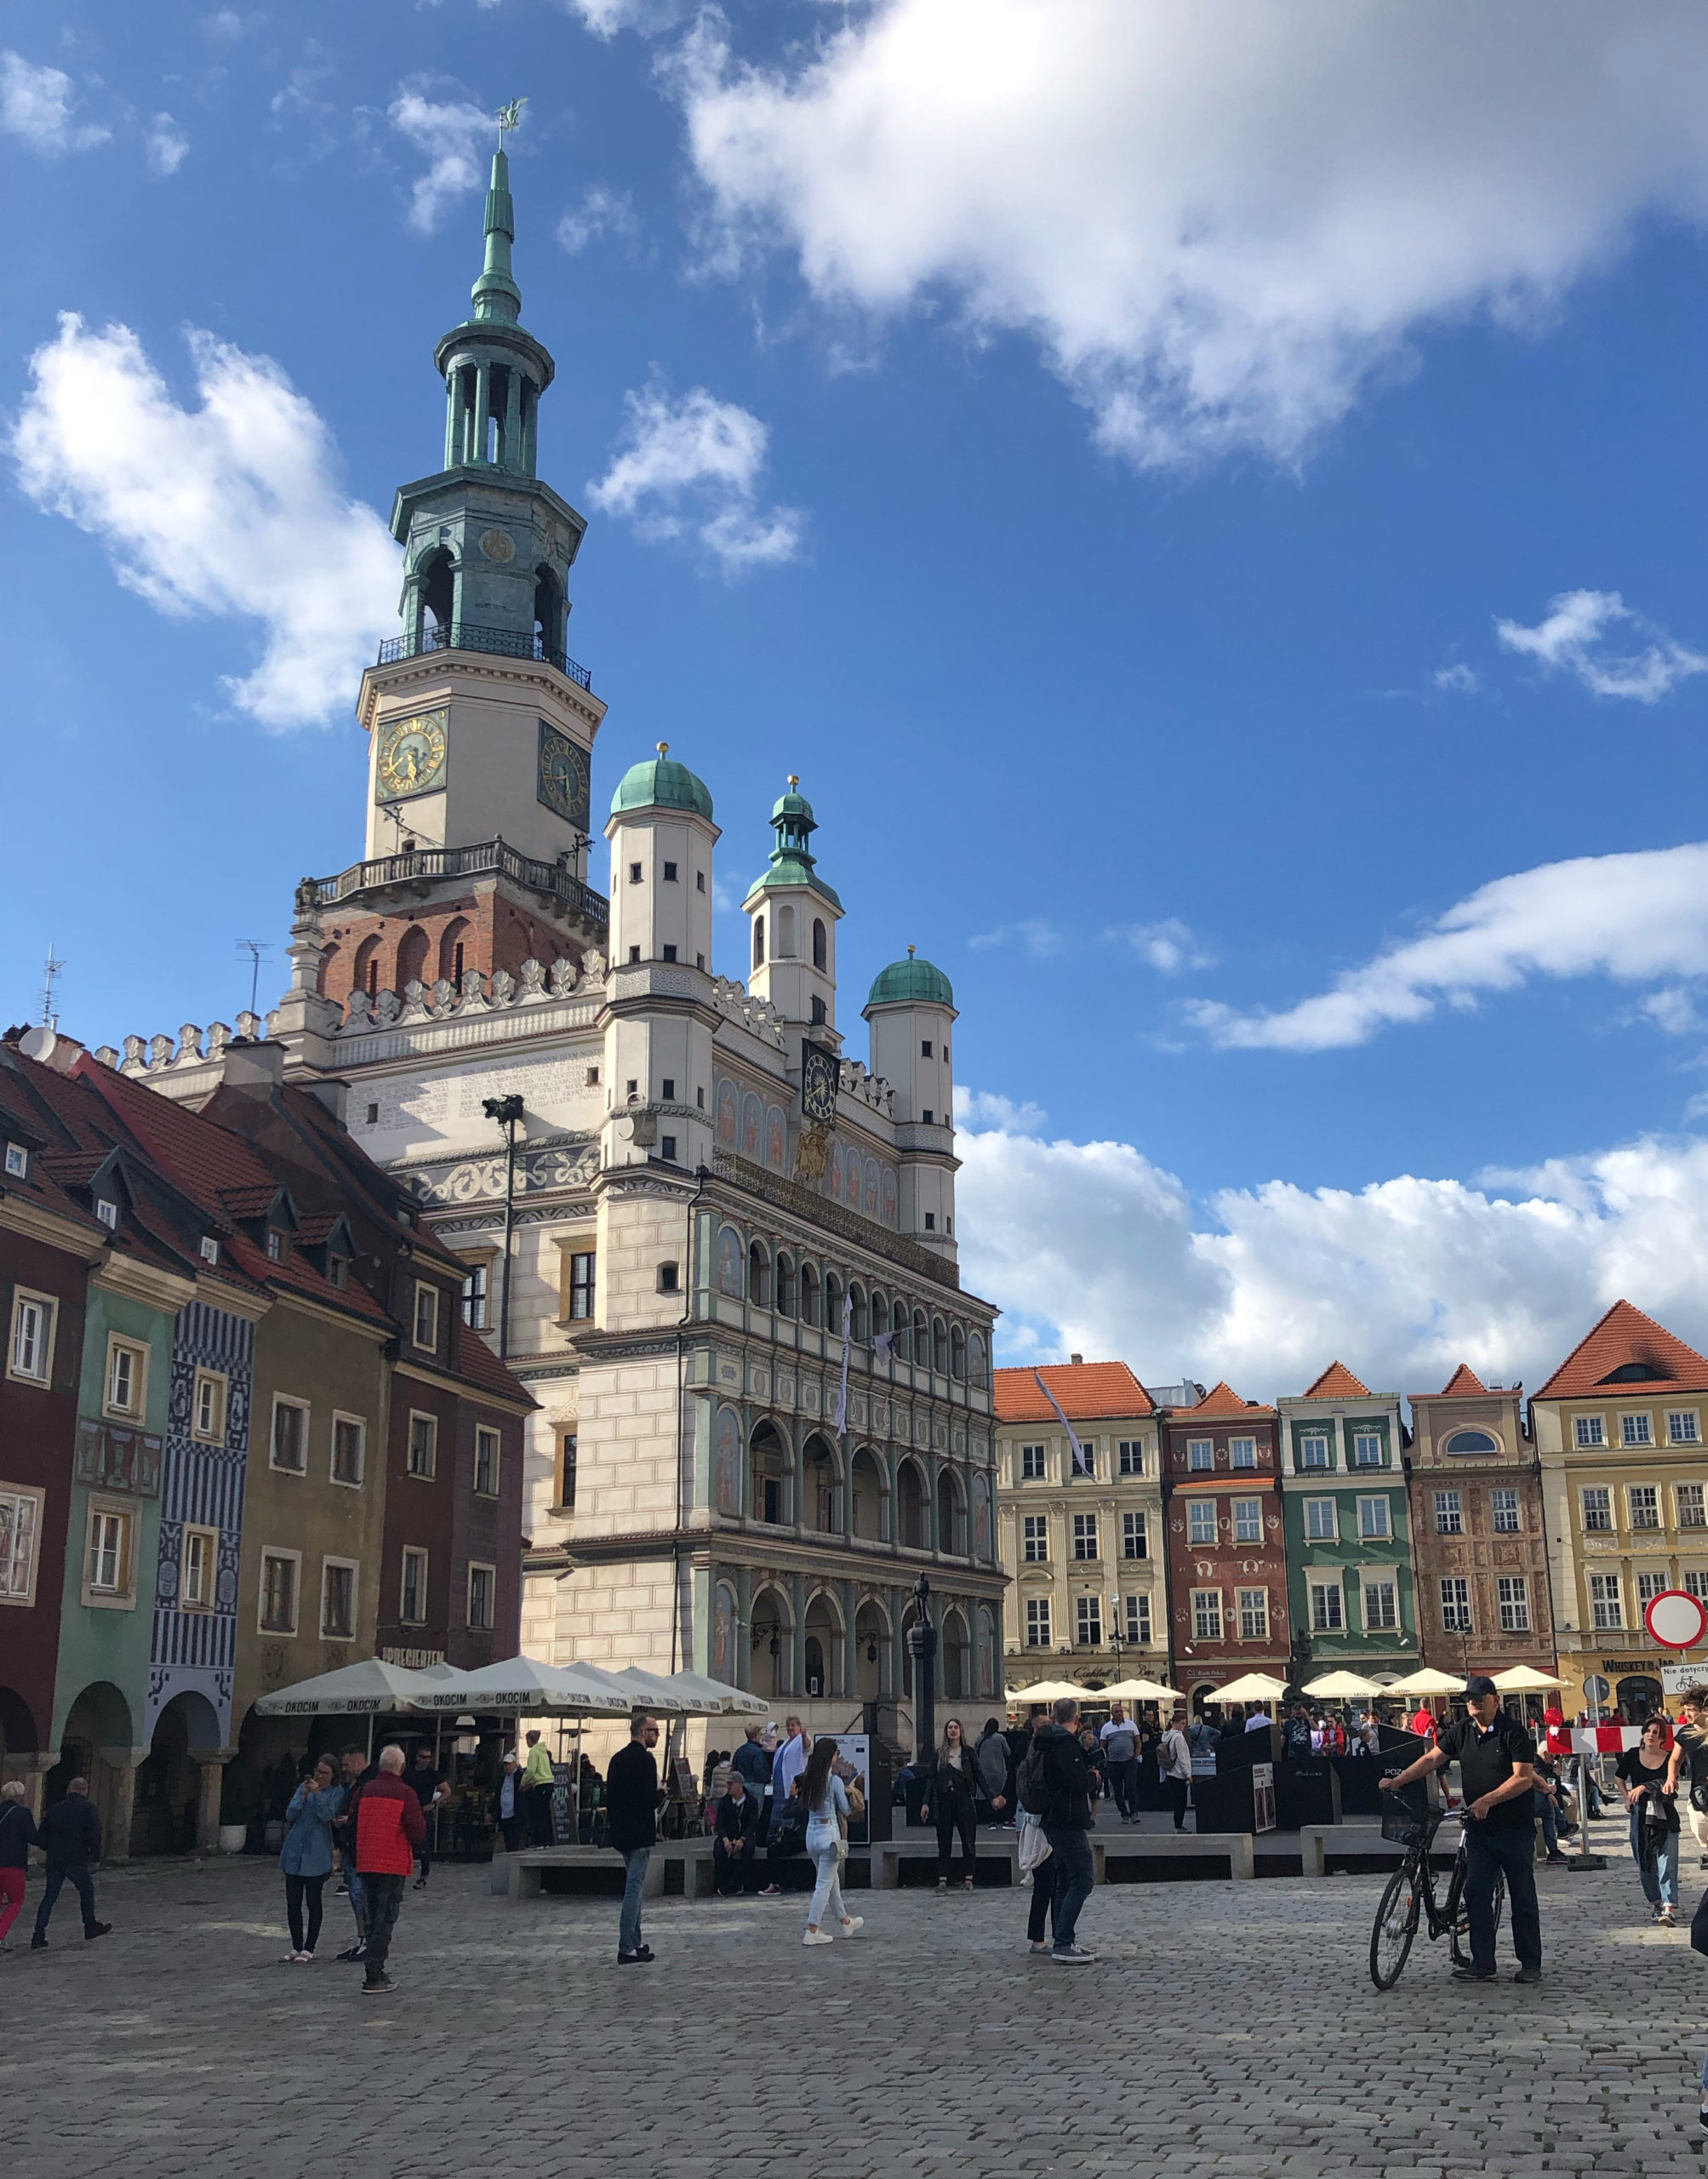 Poznan City Hall. The original structures dates from the 13th century, the present facade was completed in 1560. | Vinci